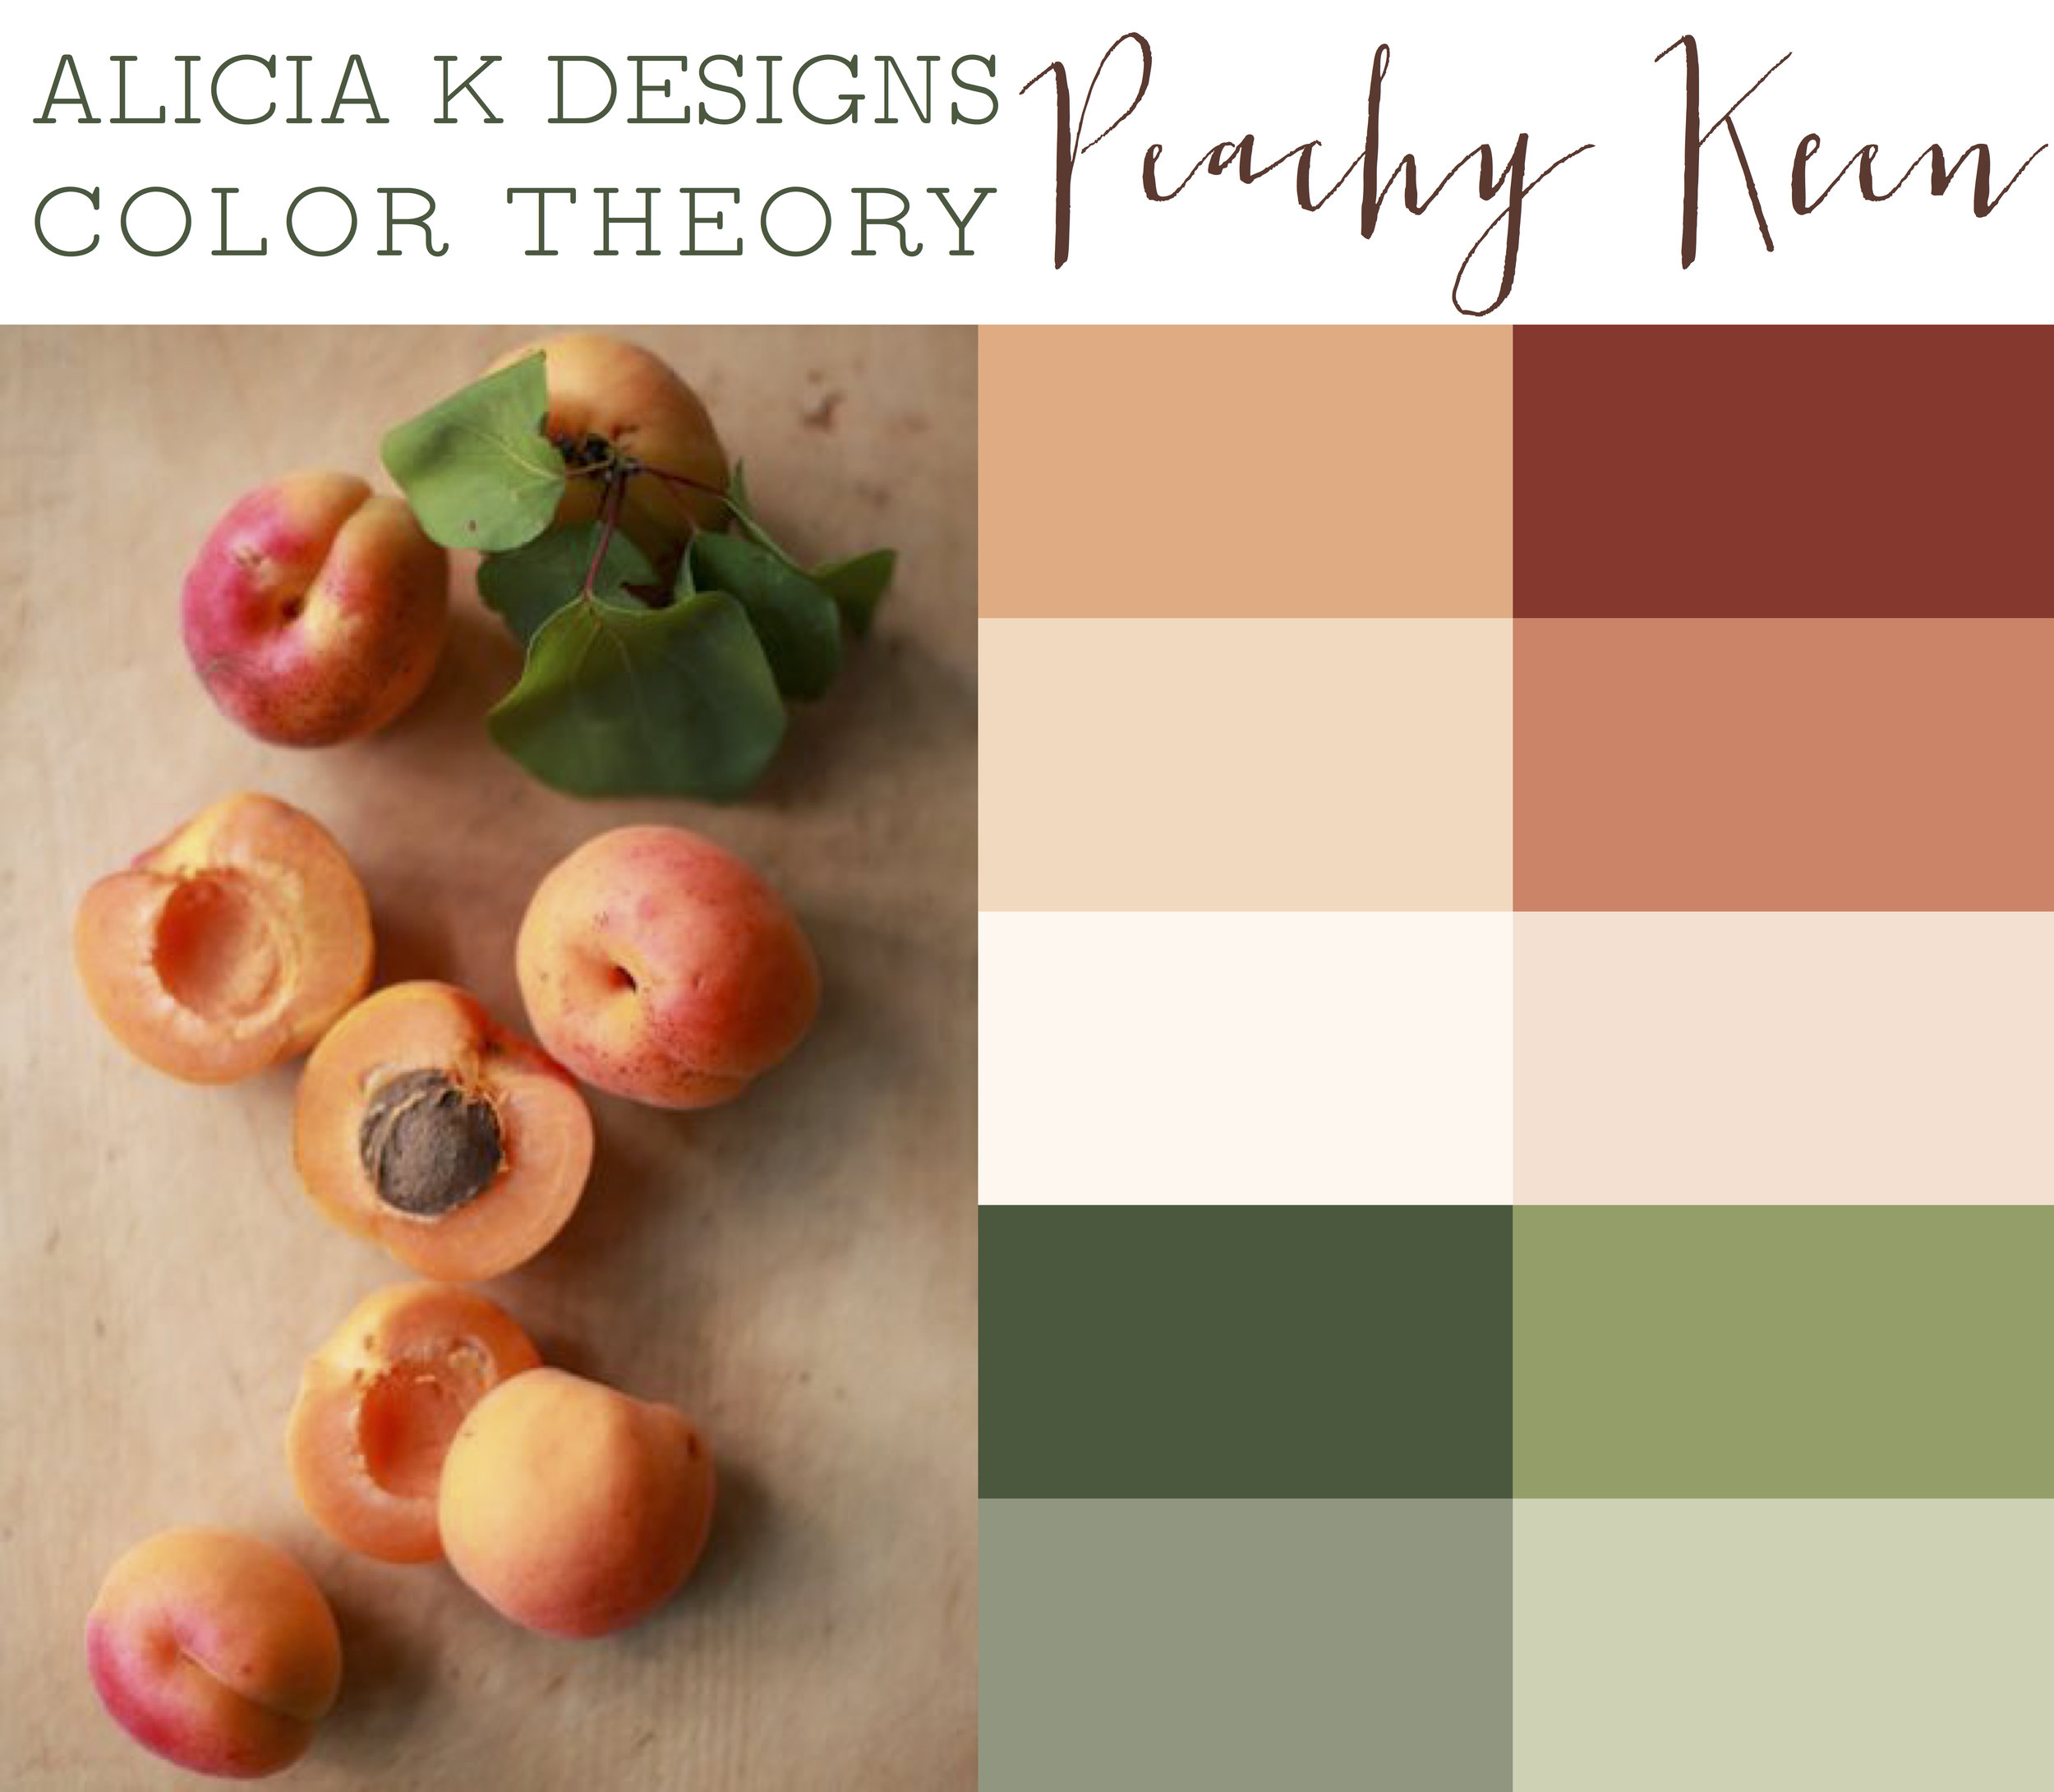 AKD Color Theory: Peachy Keen